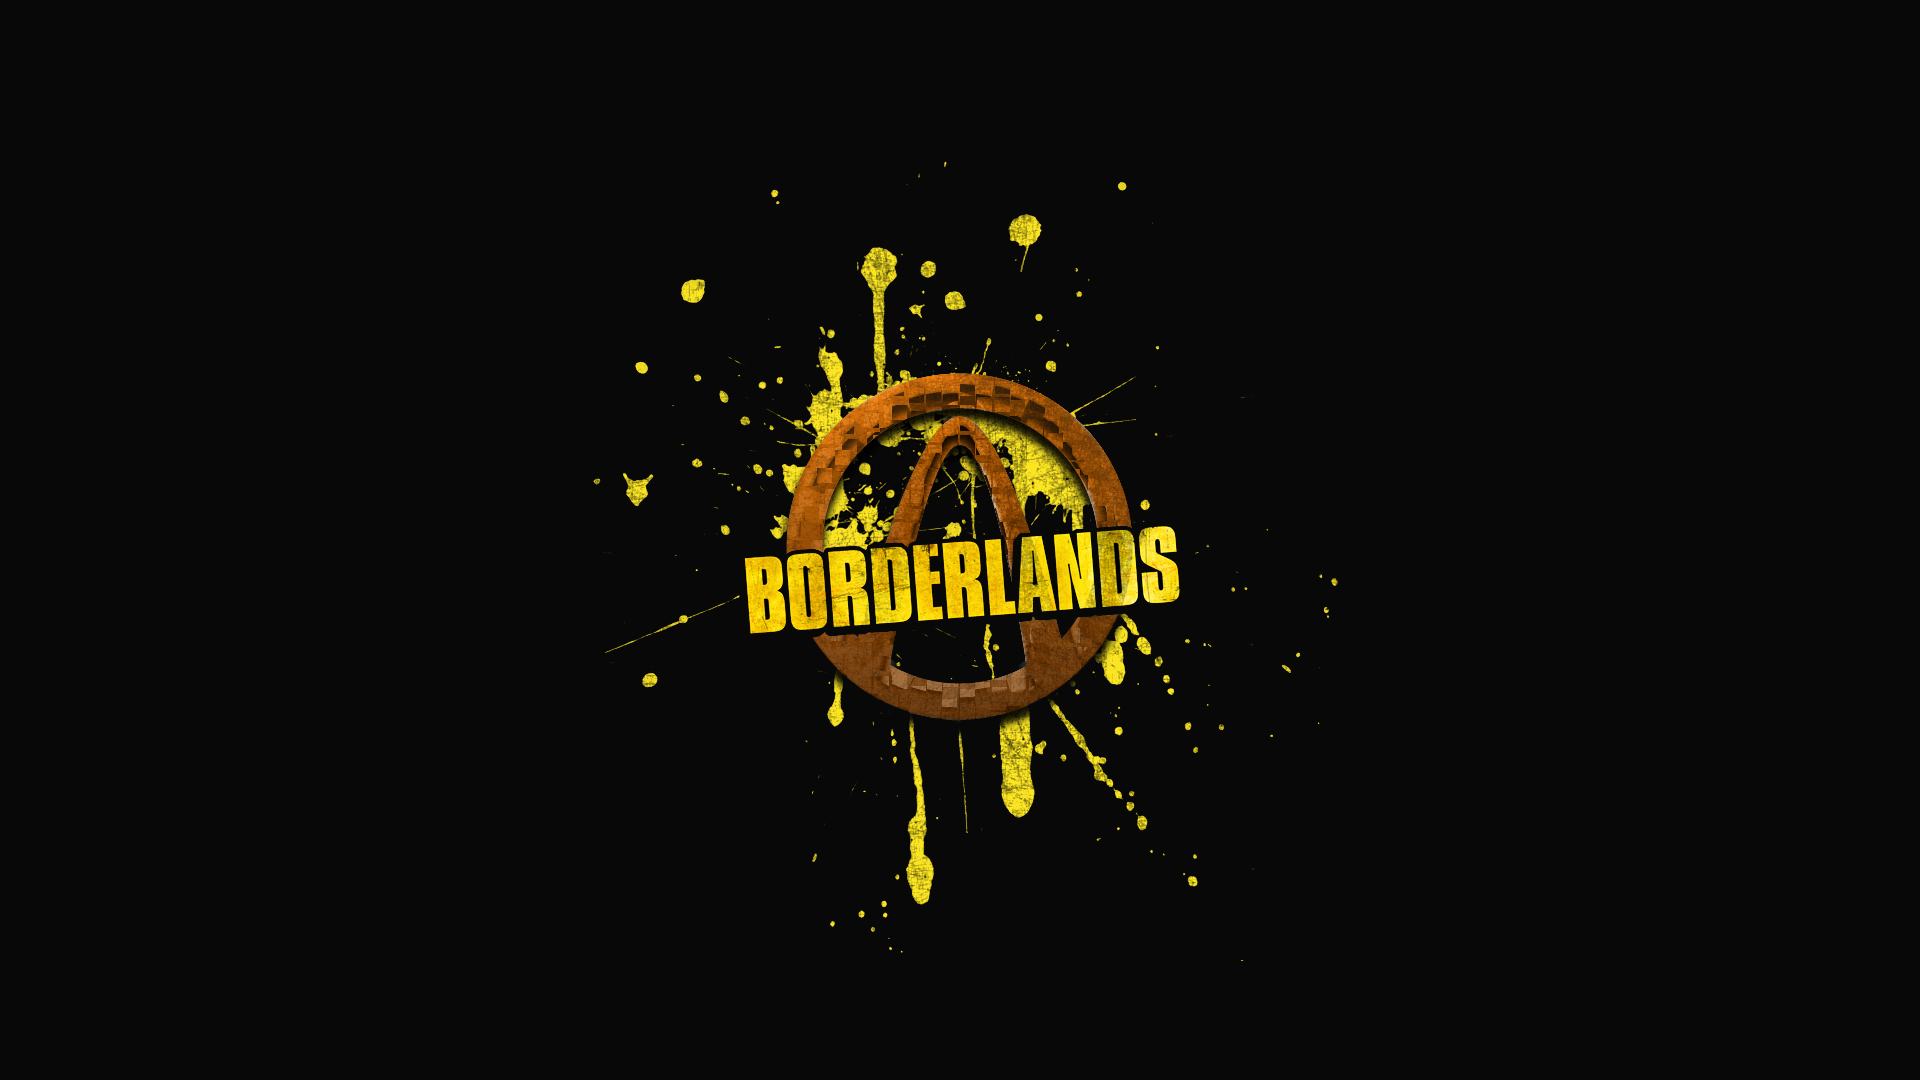 Borderlands - desktop wallpaper